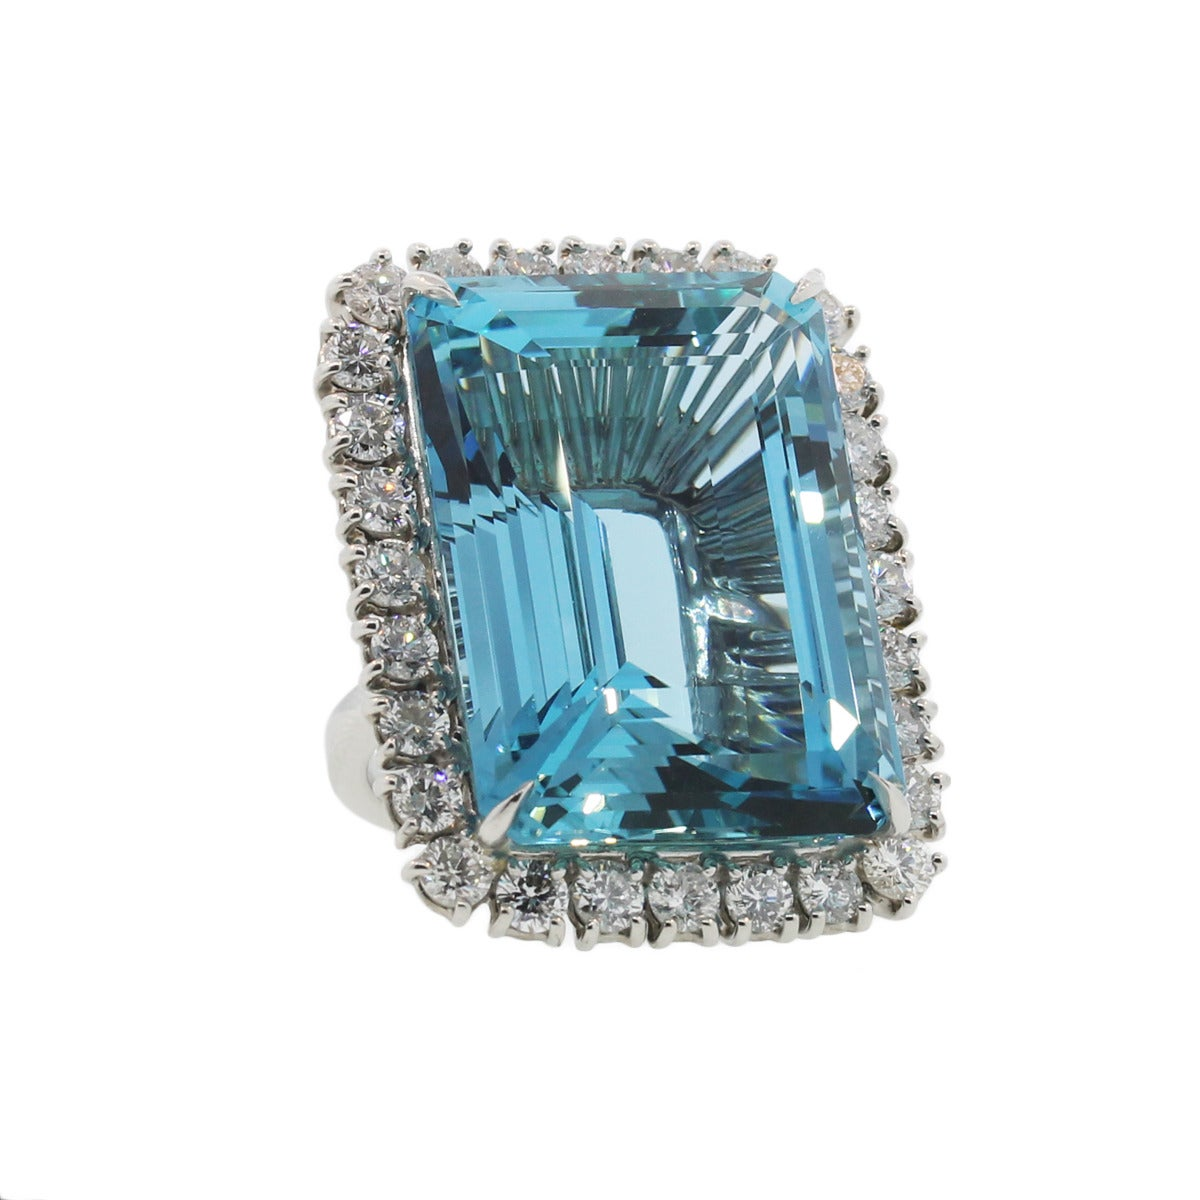 Metal: Platinum Gemstone Details: Aquamarine, 66.05ct Diamonds Details: Round Brilliant Cut Diamonds; Approximately 4.5ctw, H/I in color, VS2/SI1 in clarity Item Weight: 37.7g (24.3dwt) Ring Size: 6.5 (can be sized) Comes With: Includes a